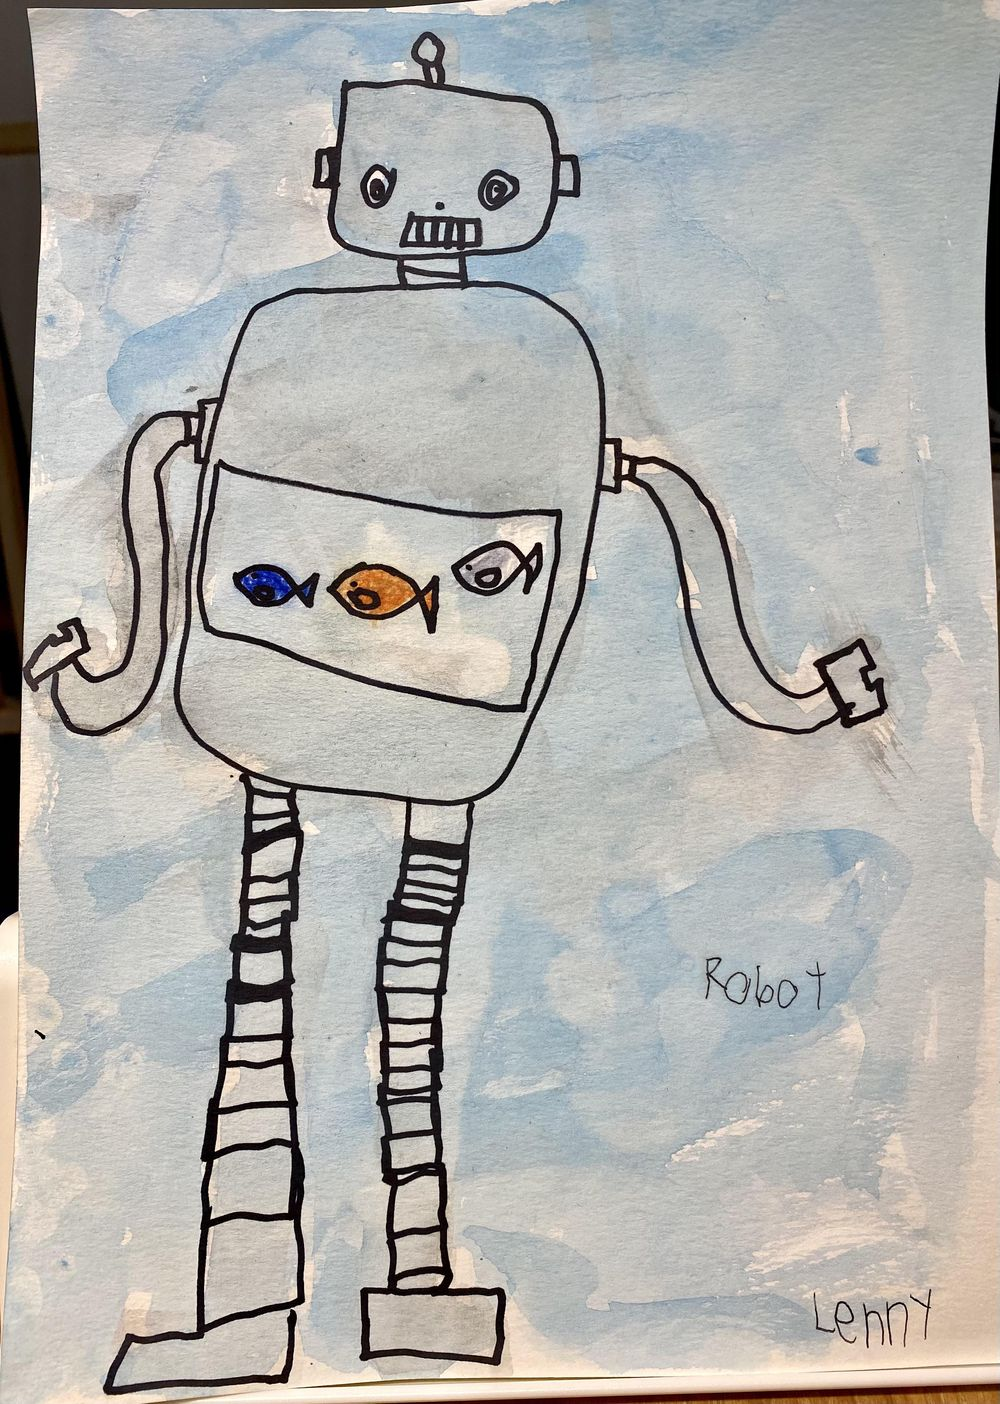 Robot with a fish tank by Lenny - image 1 - student project